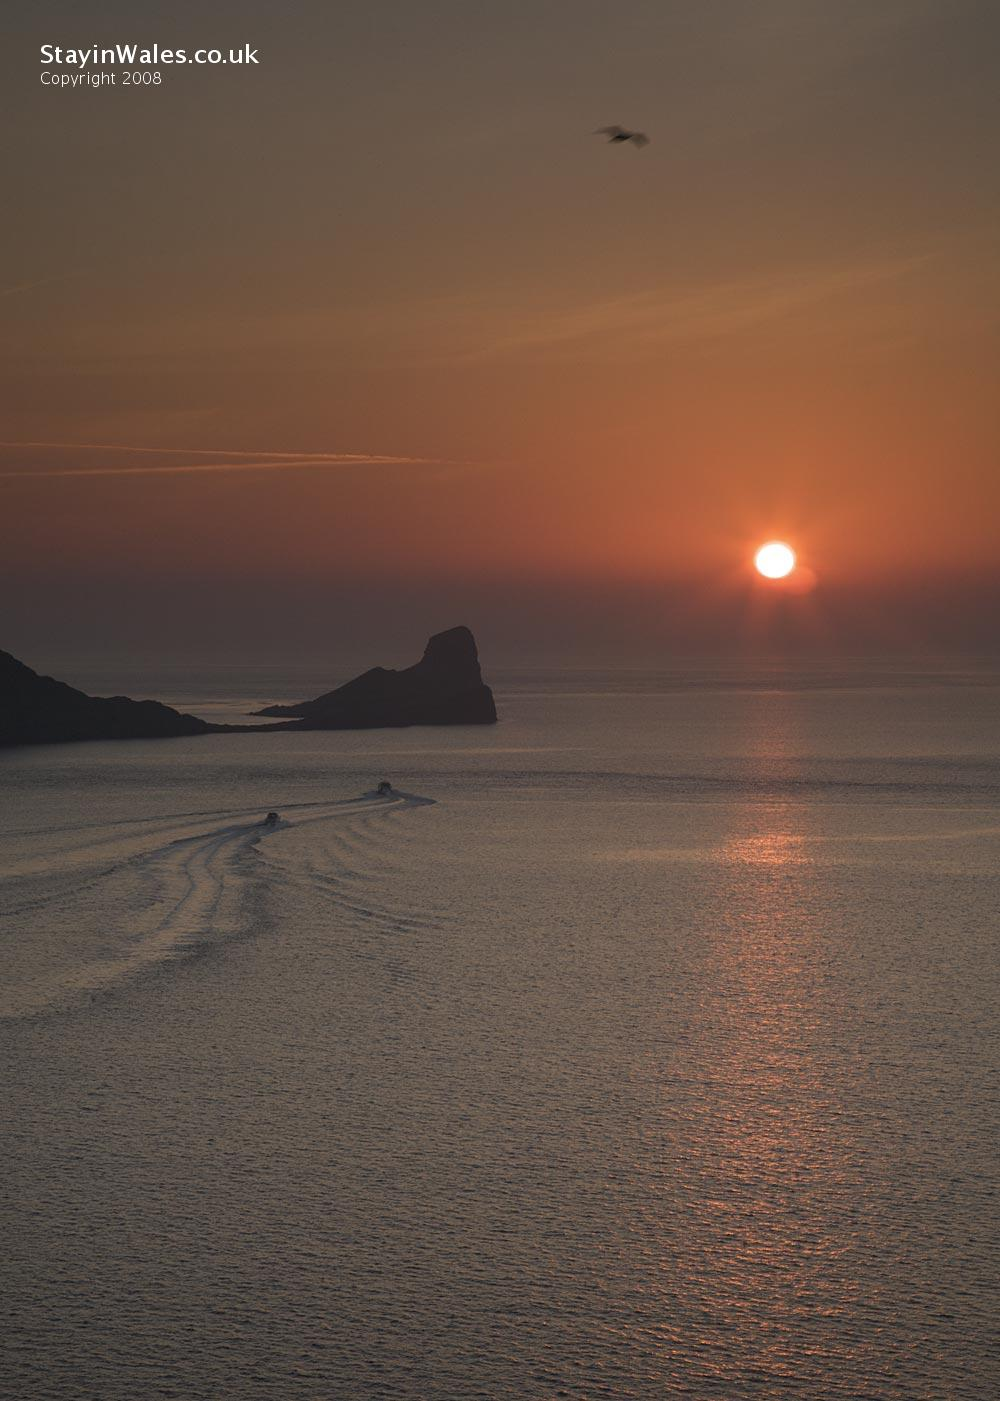 Sunset at Worm's Head, Rhossili Bay